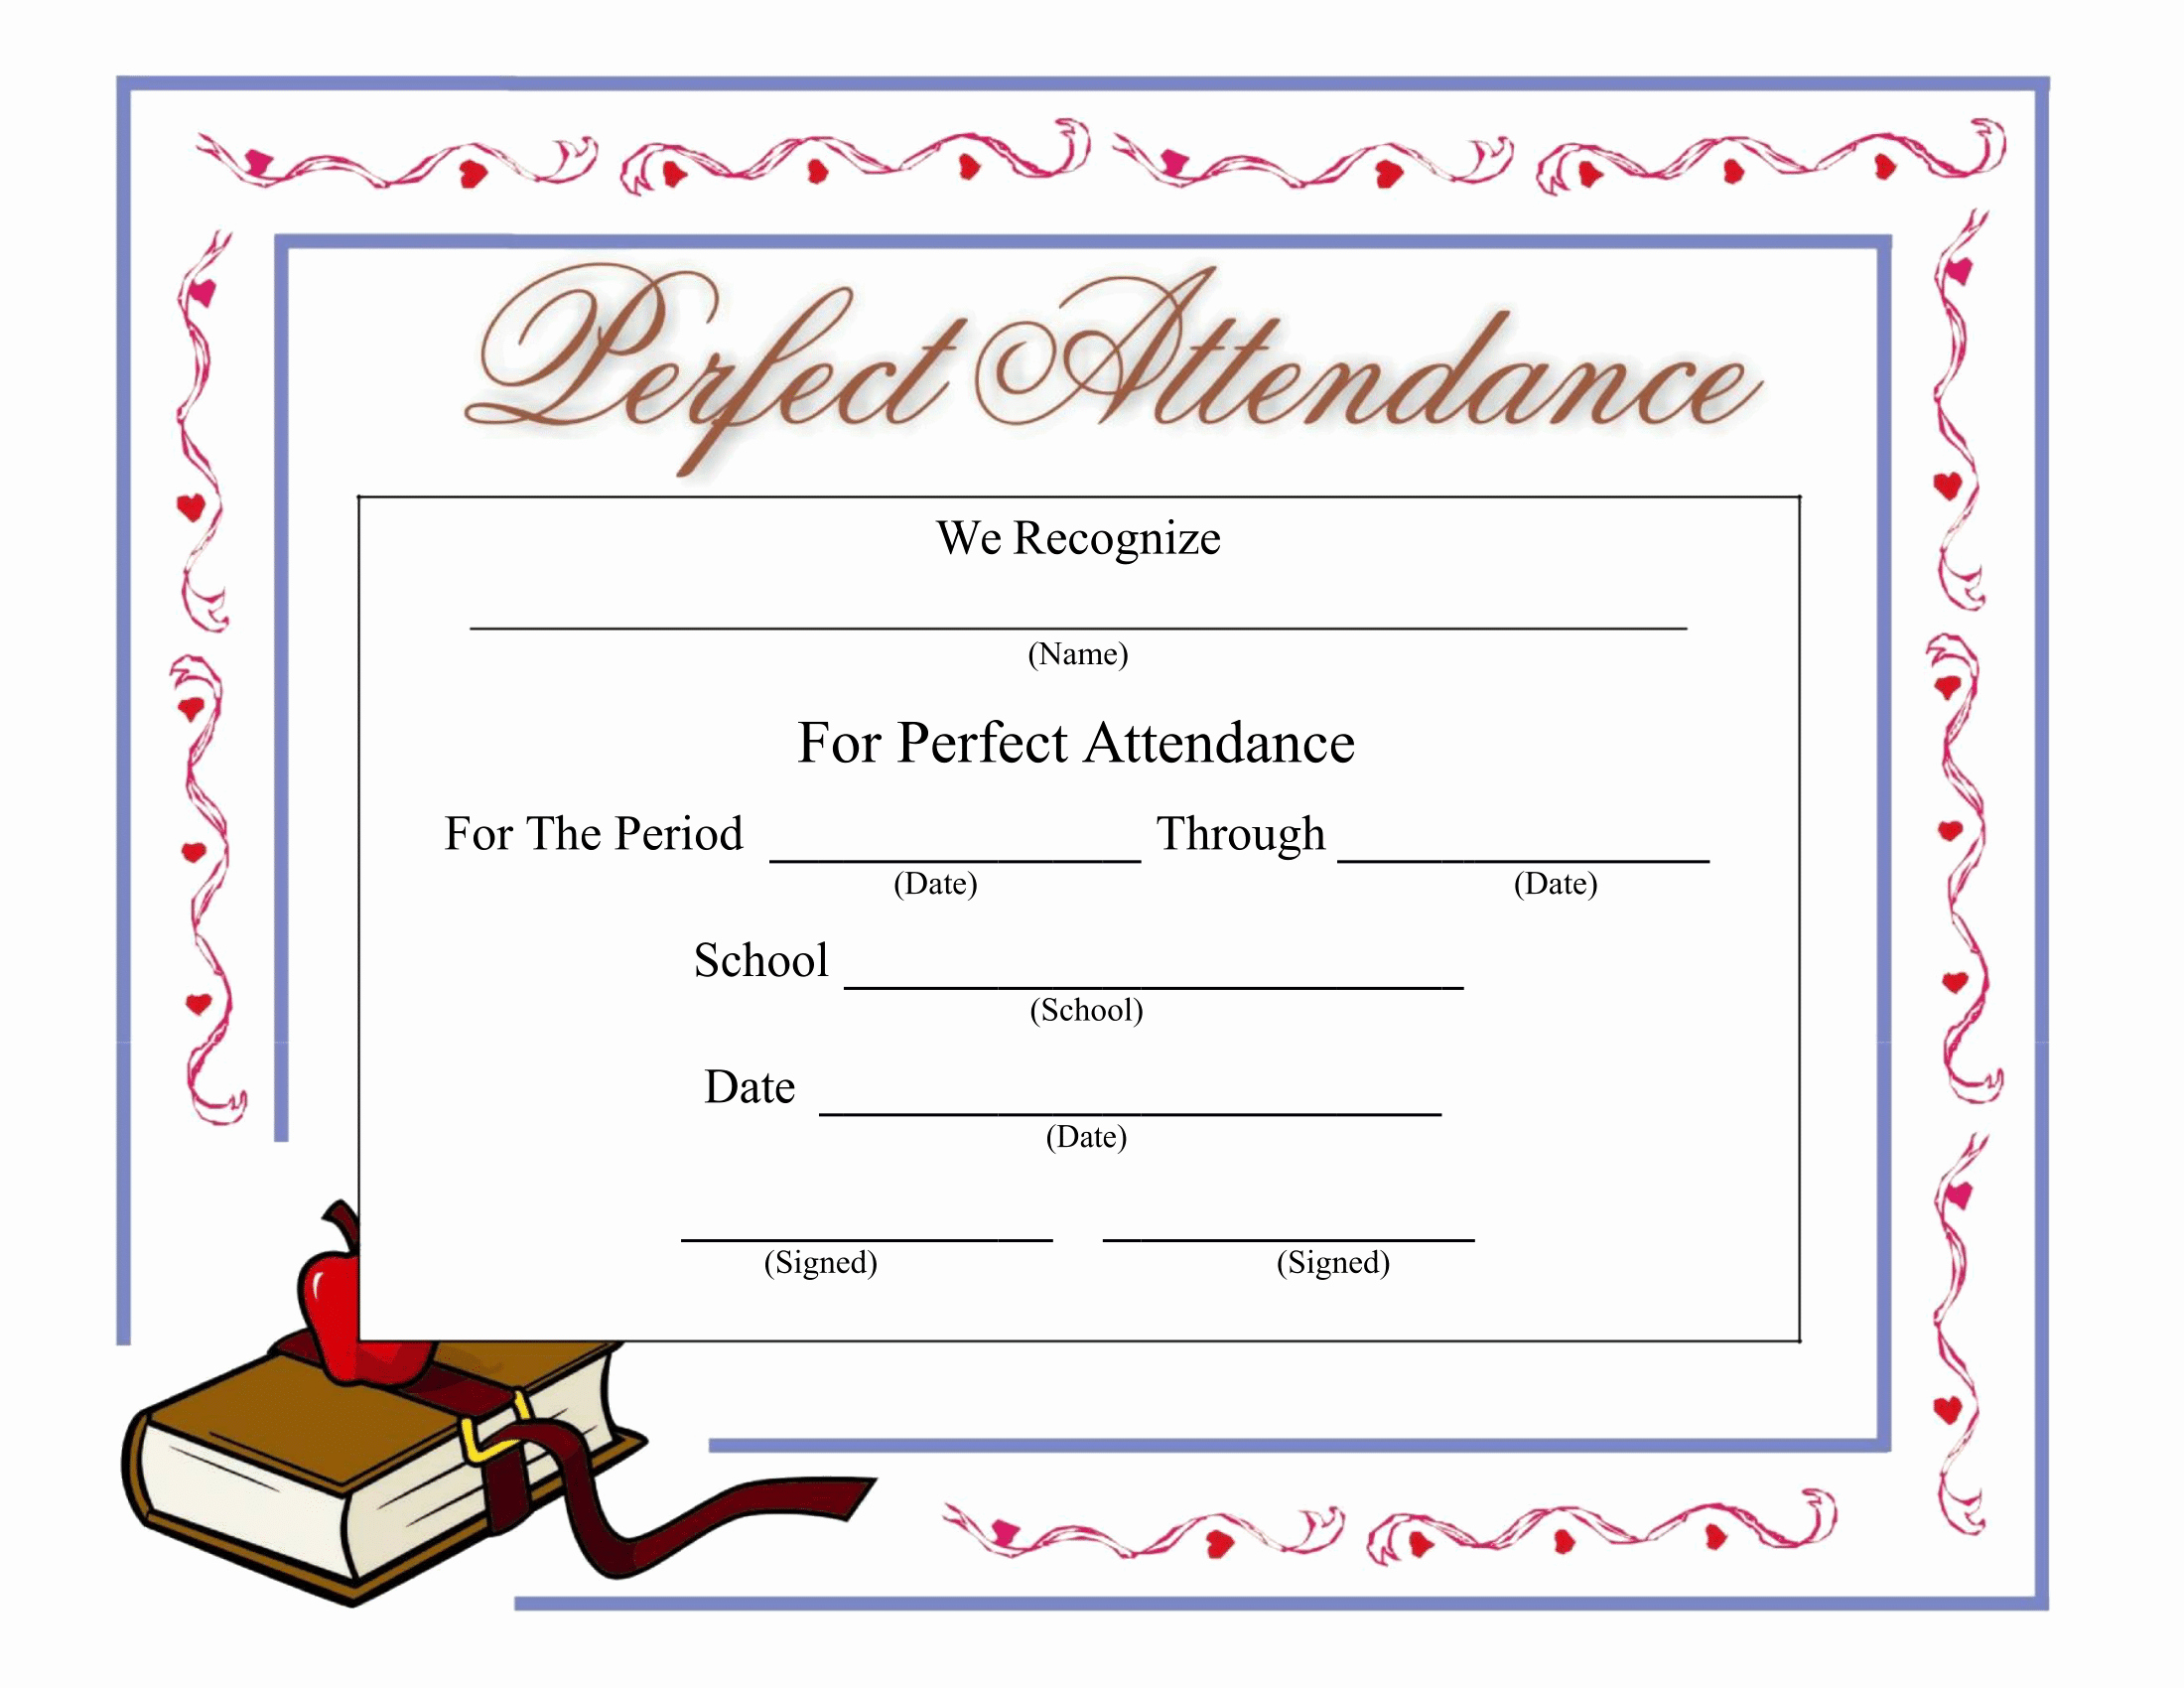 Perfect attendance Certificate Free Download Luxury Certificates Download Free Business Letter Templates